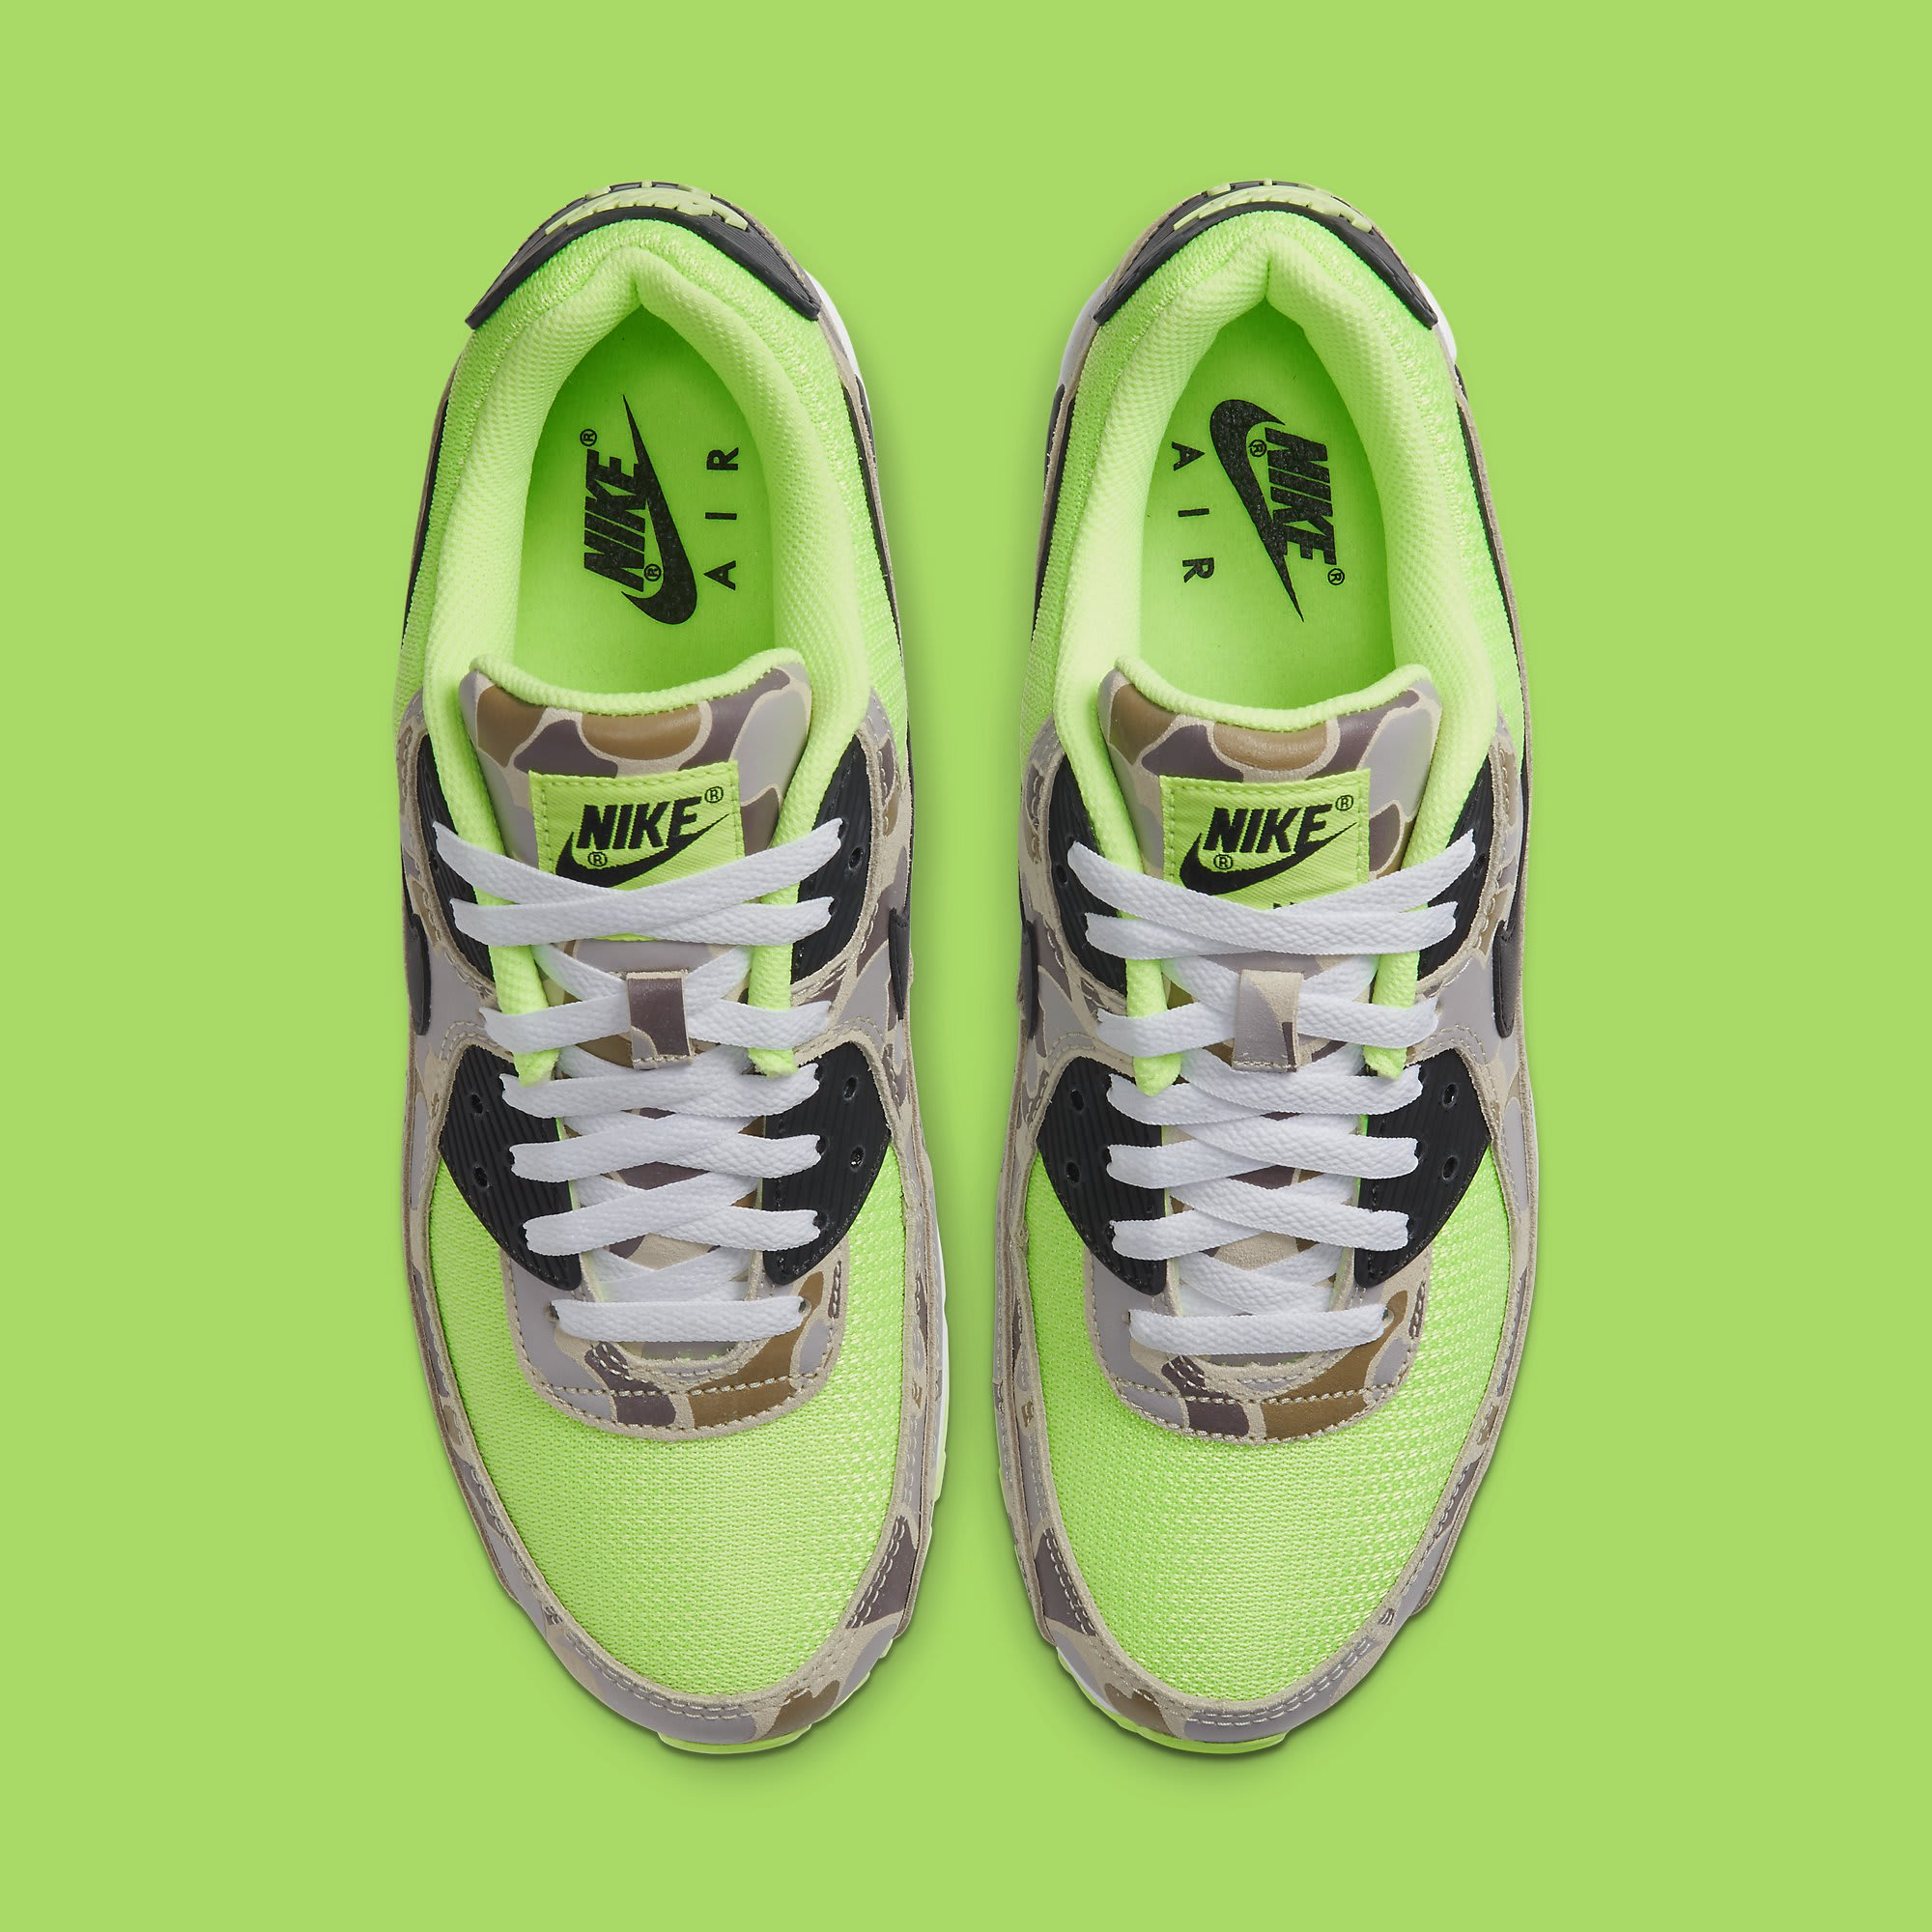 Nike Air Max 90 Volt Duck Camo Ghost Green Release Date CW4039-300 Top